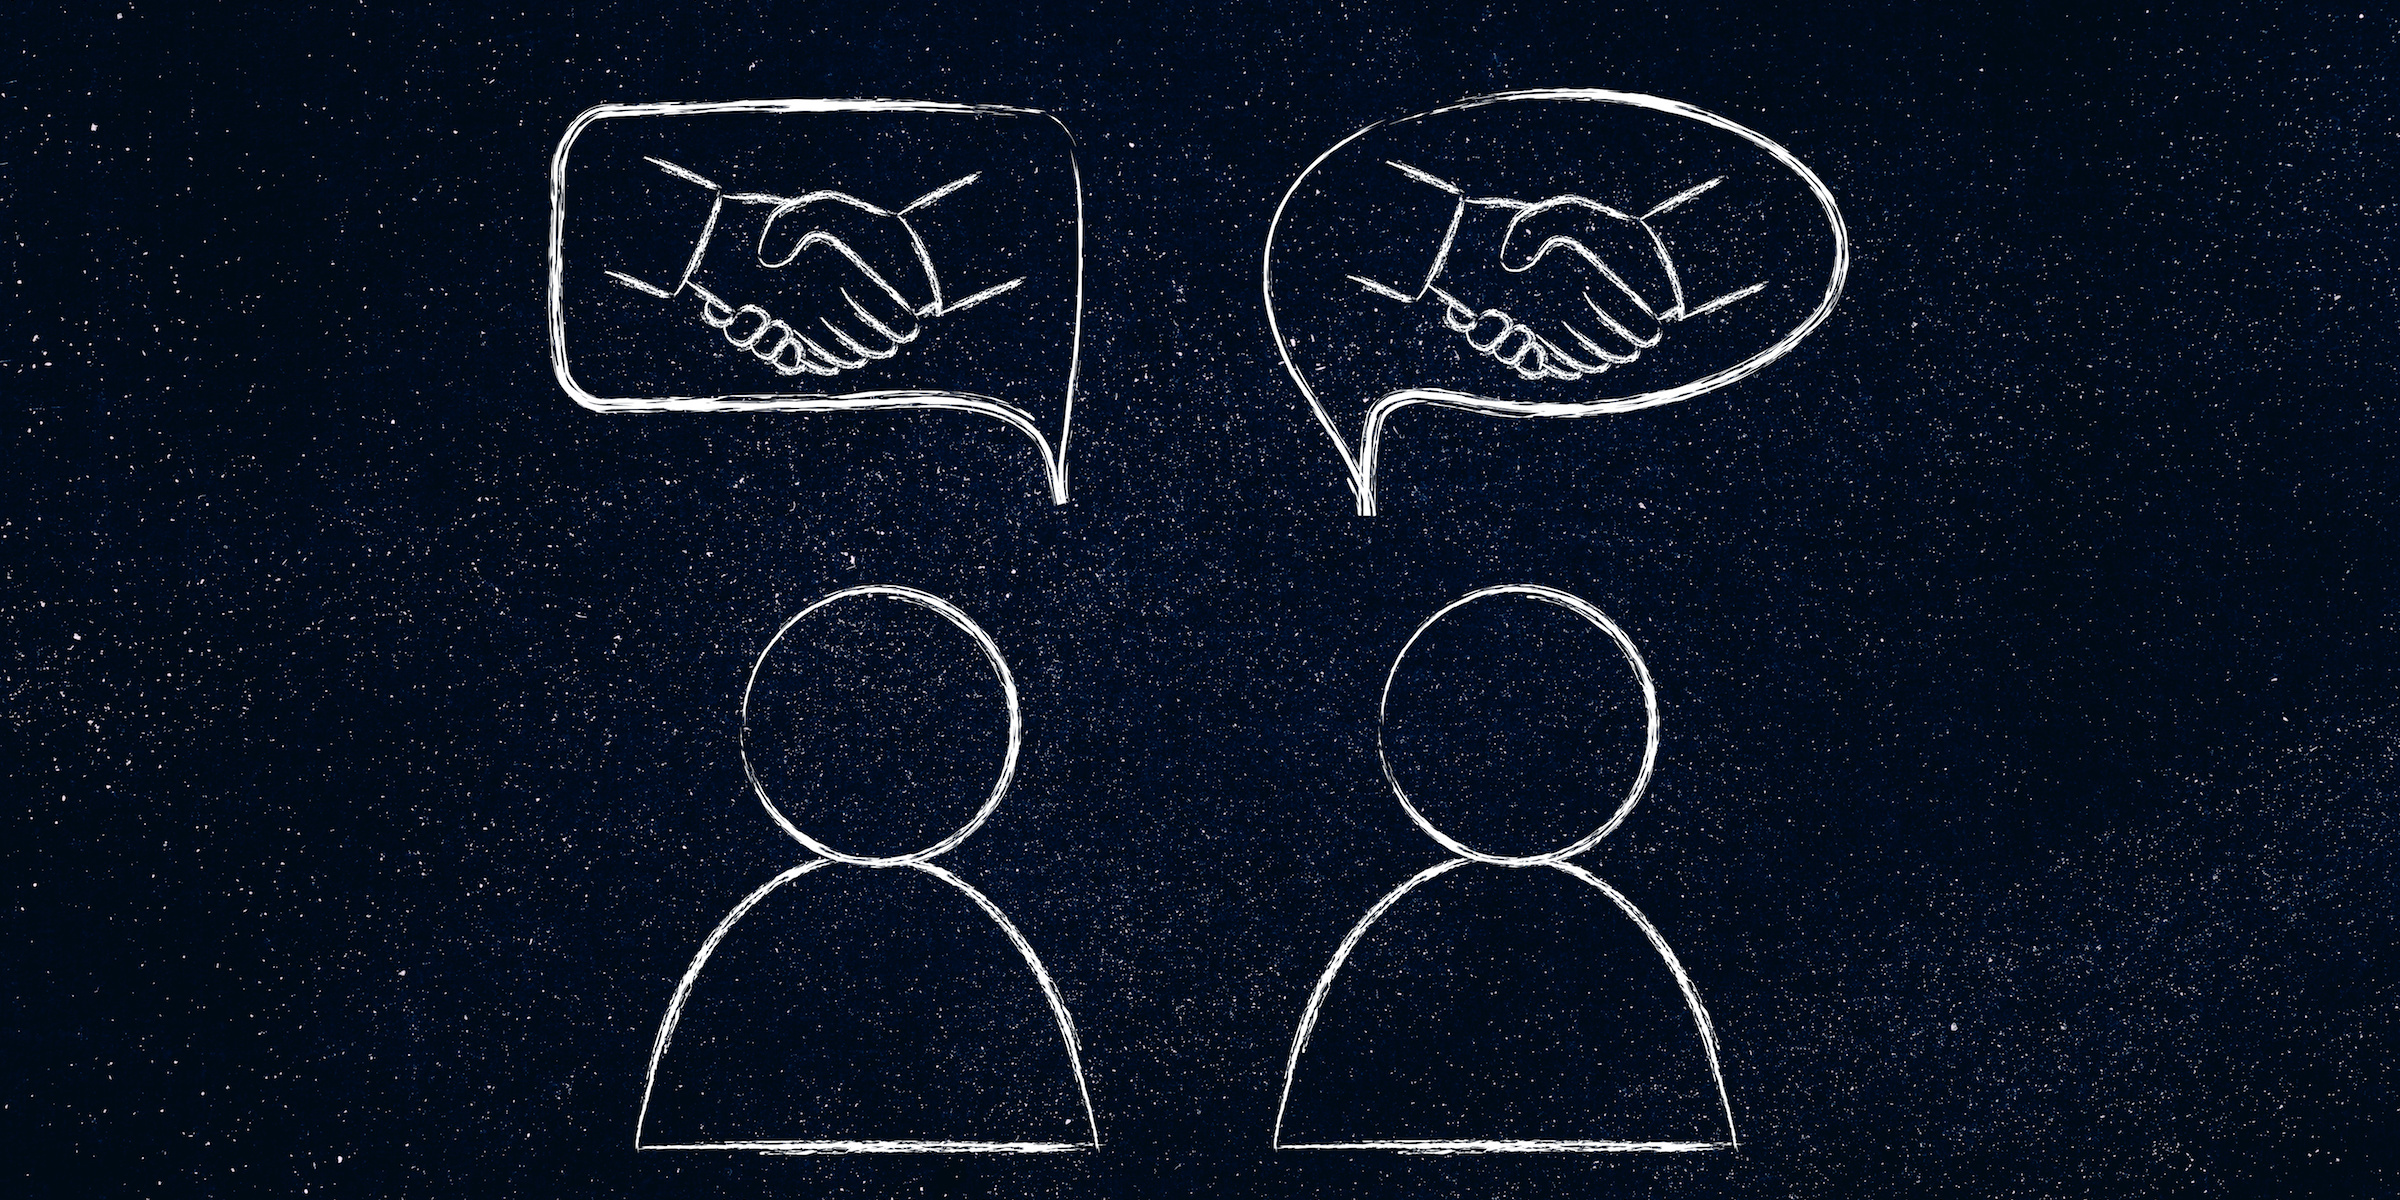 Do Introverts or Extroverts Make Better Sales Leaders?